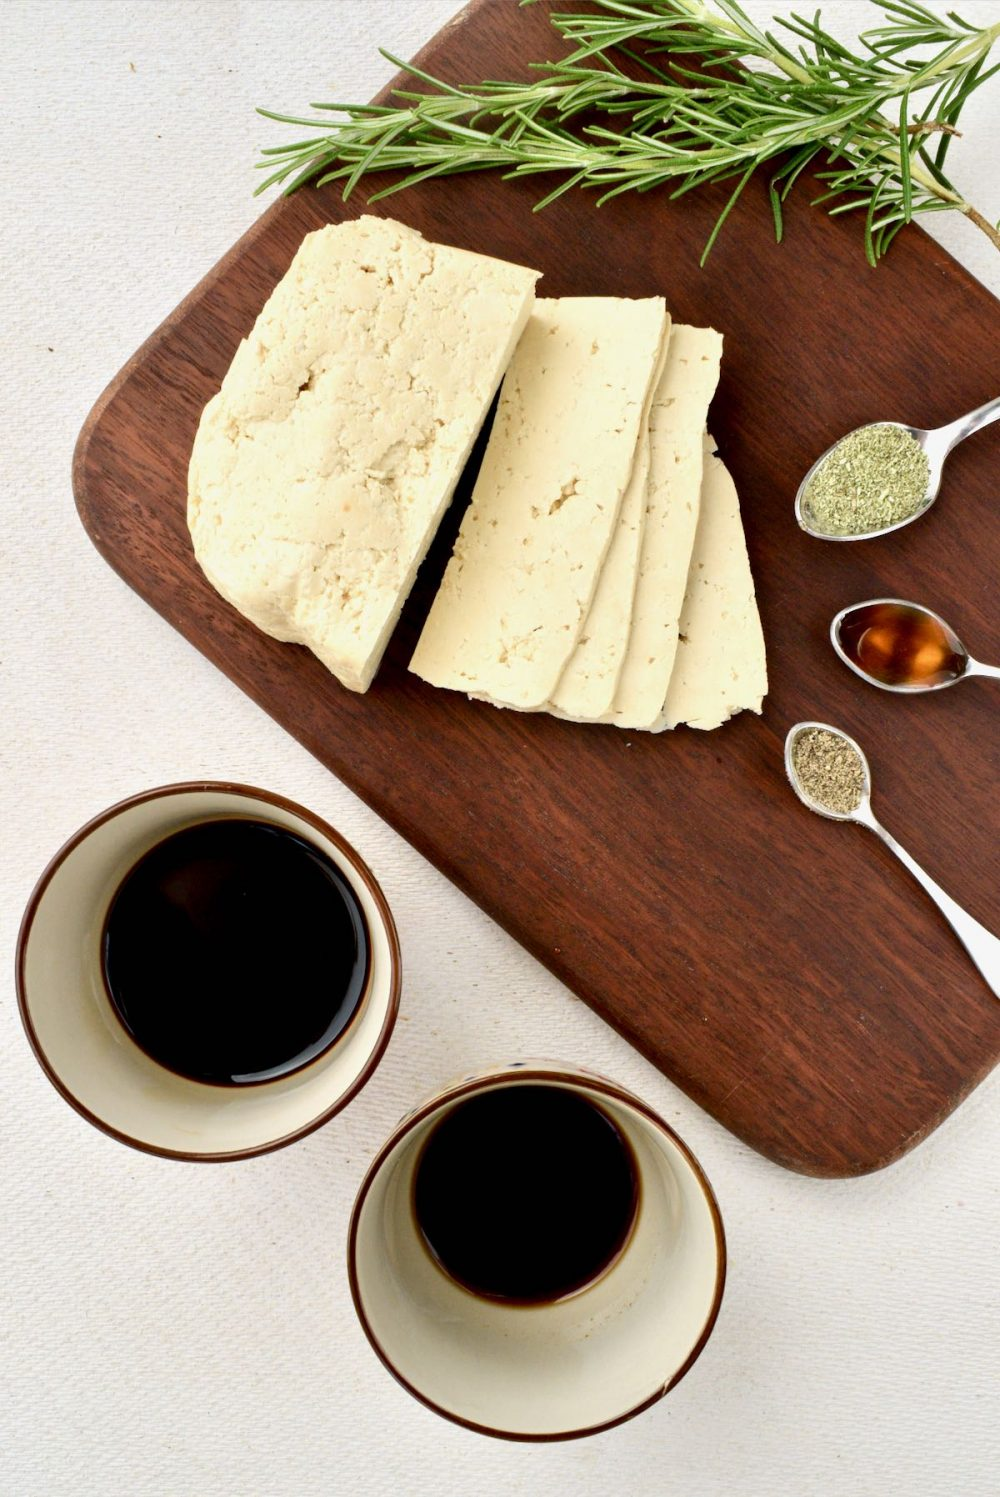 An arrangement of the recipe's main ingredients: tofu slices on a dark wooden board, ground rosemary, maple syrup and black pepper on small measuring spoons, and soy sauce and liquid smoke in small pots.